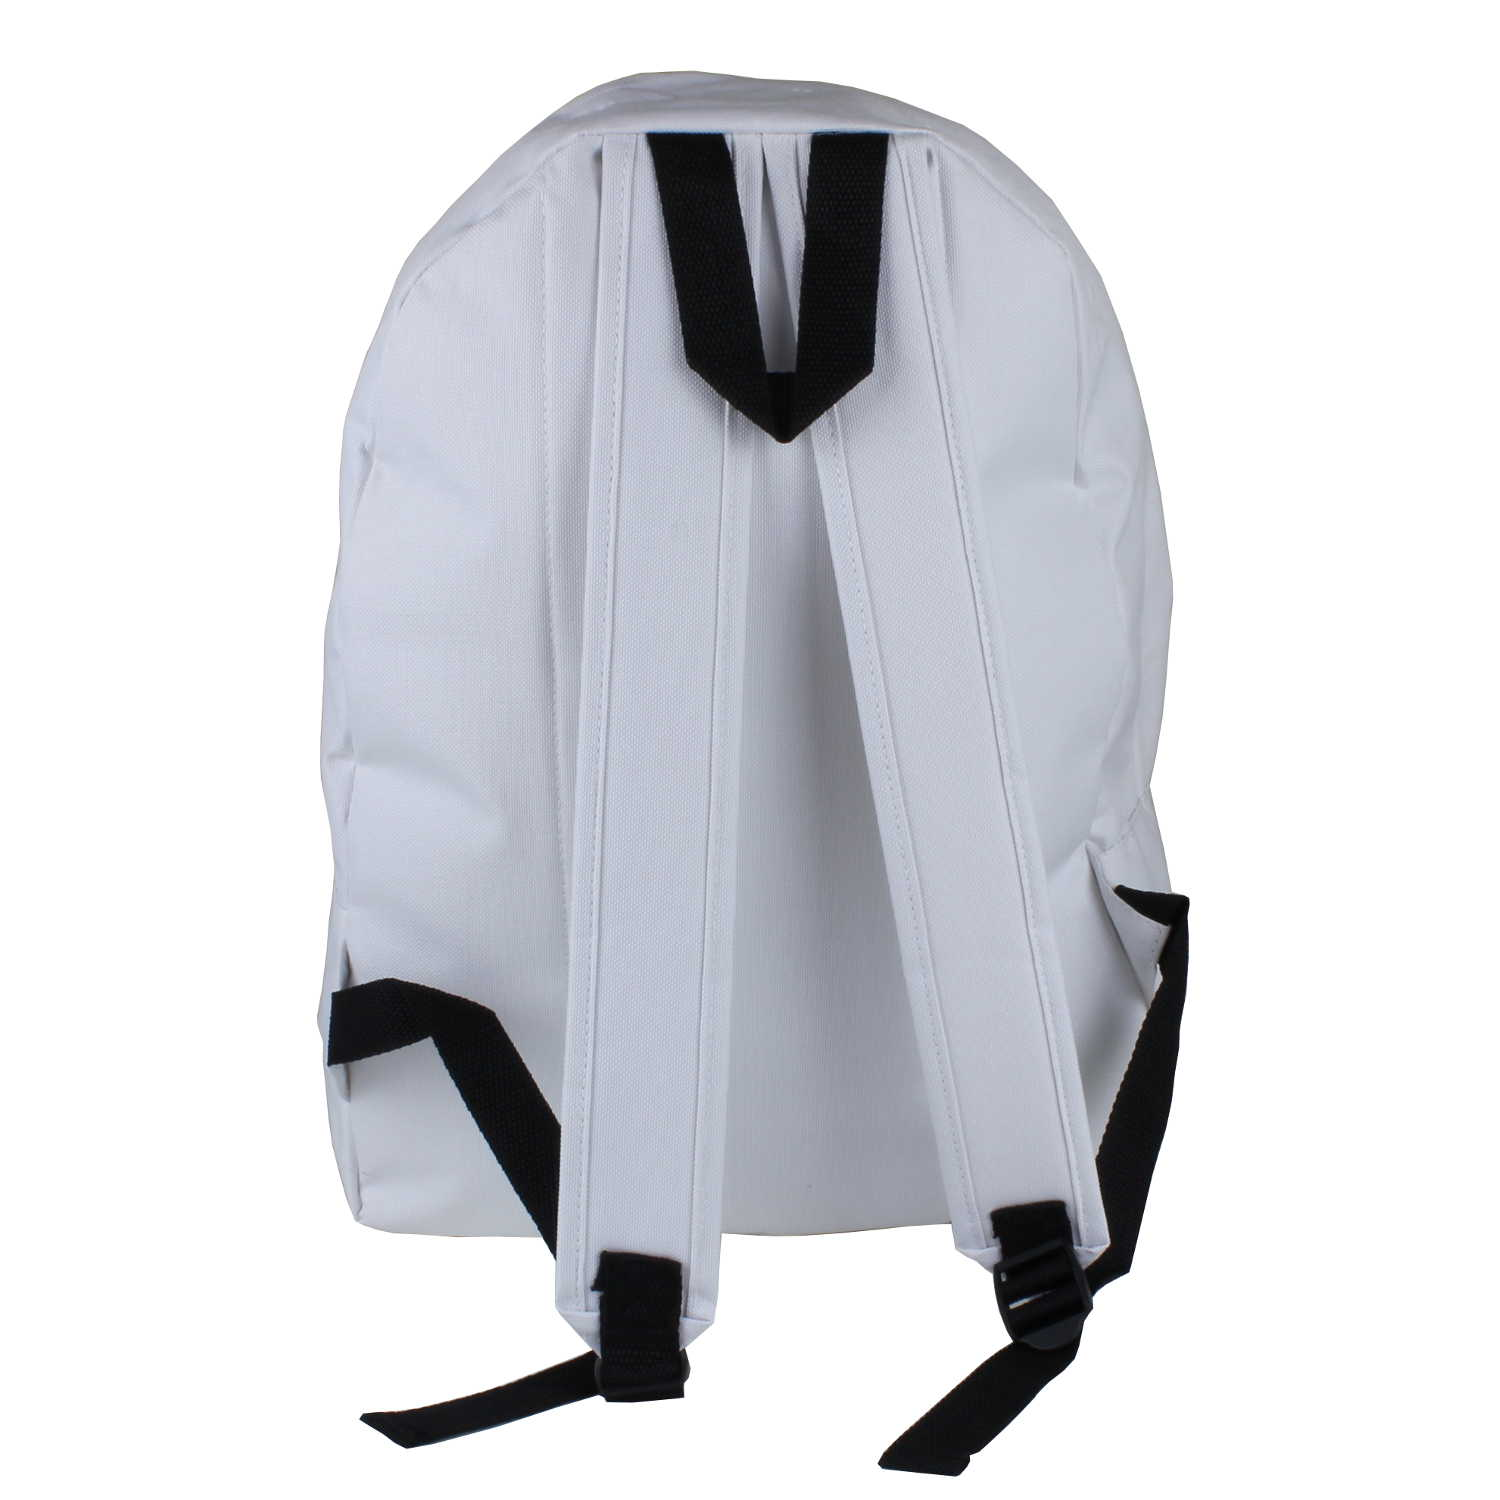 restposten 15x rucksack daypack wei schwarz black white freizeit tasche ebay. Black Bedroom Furniture Sets. Home Design Ideas